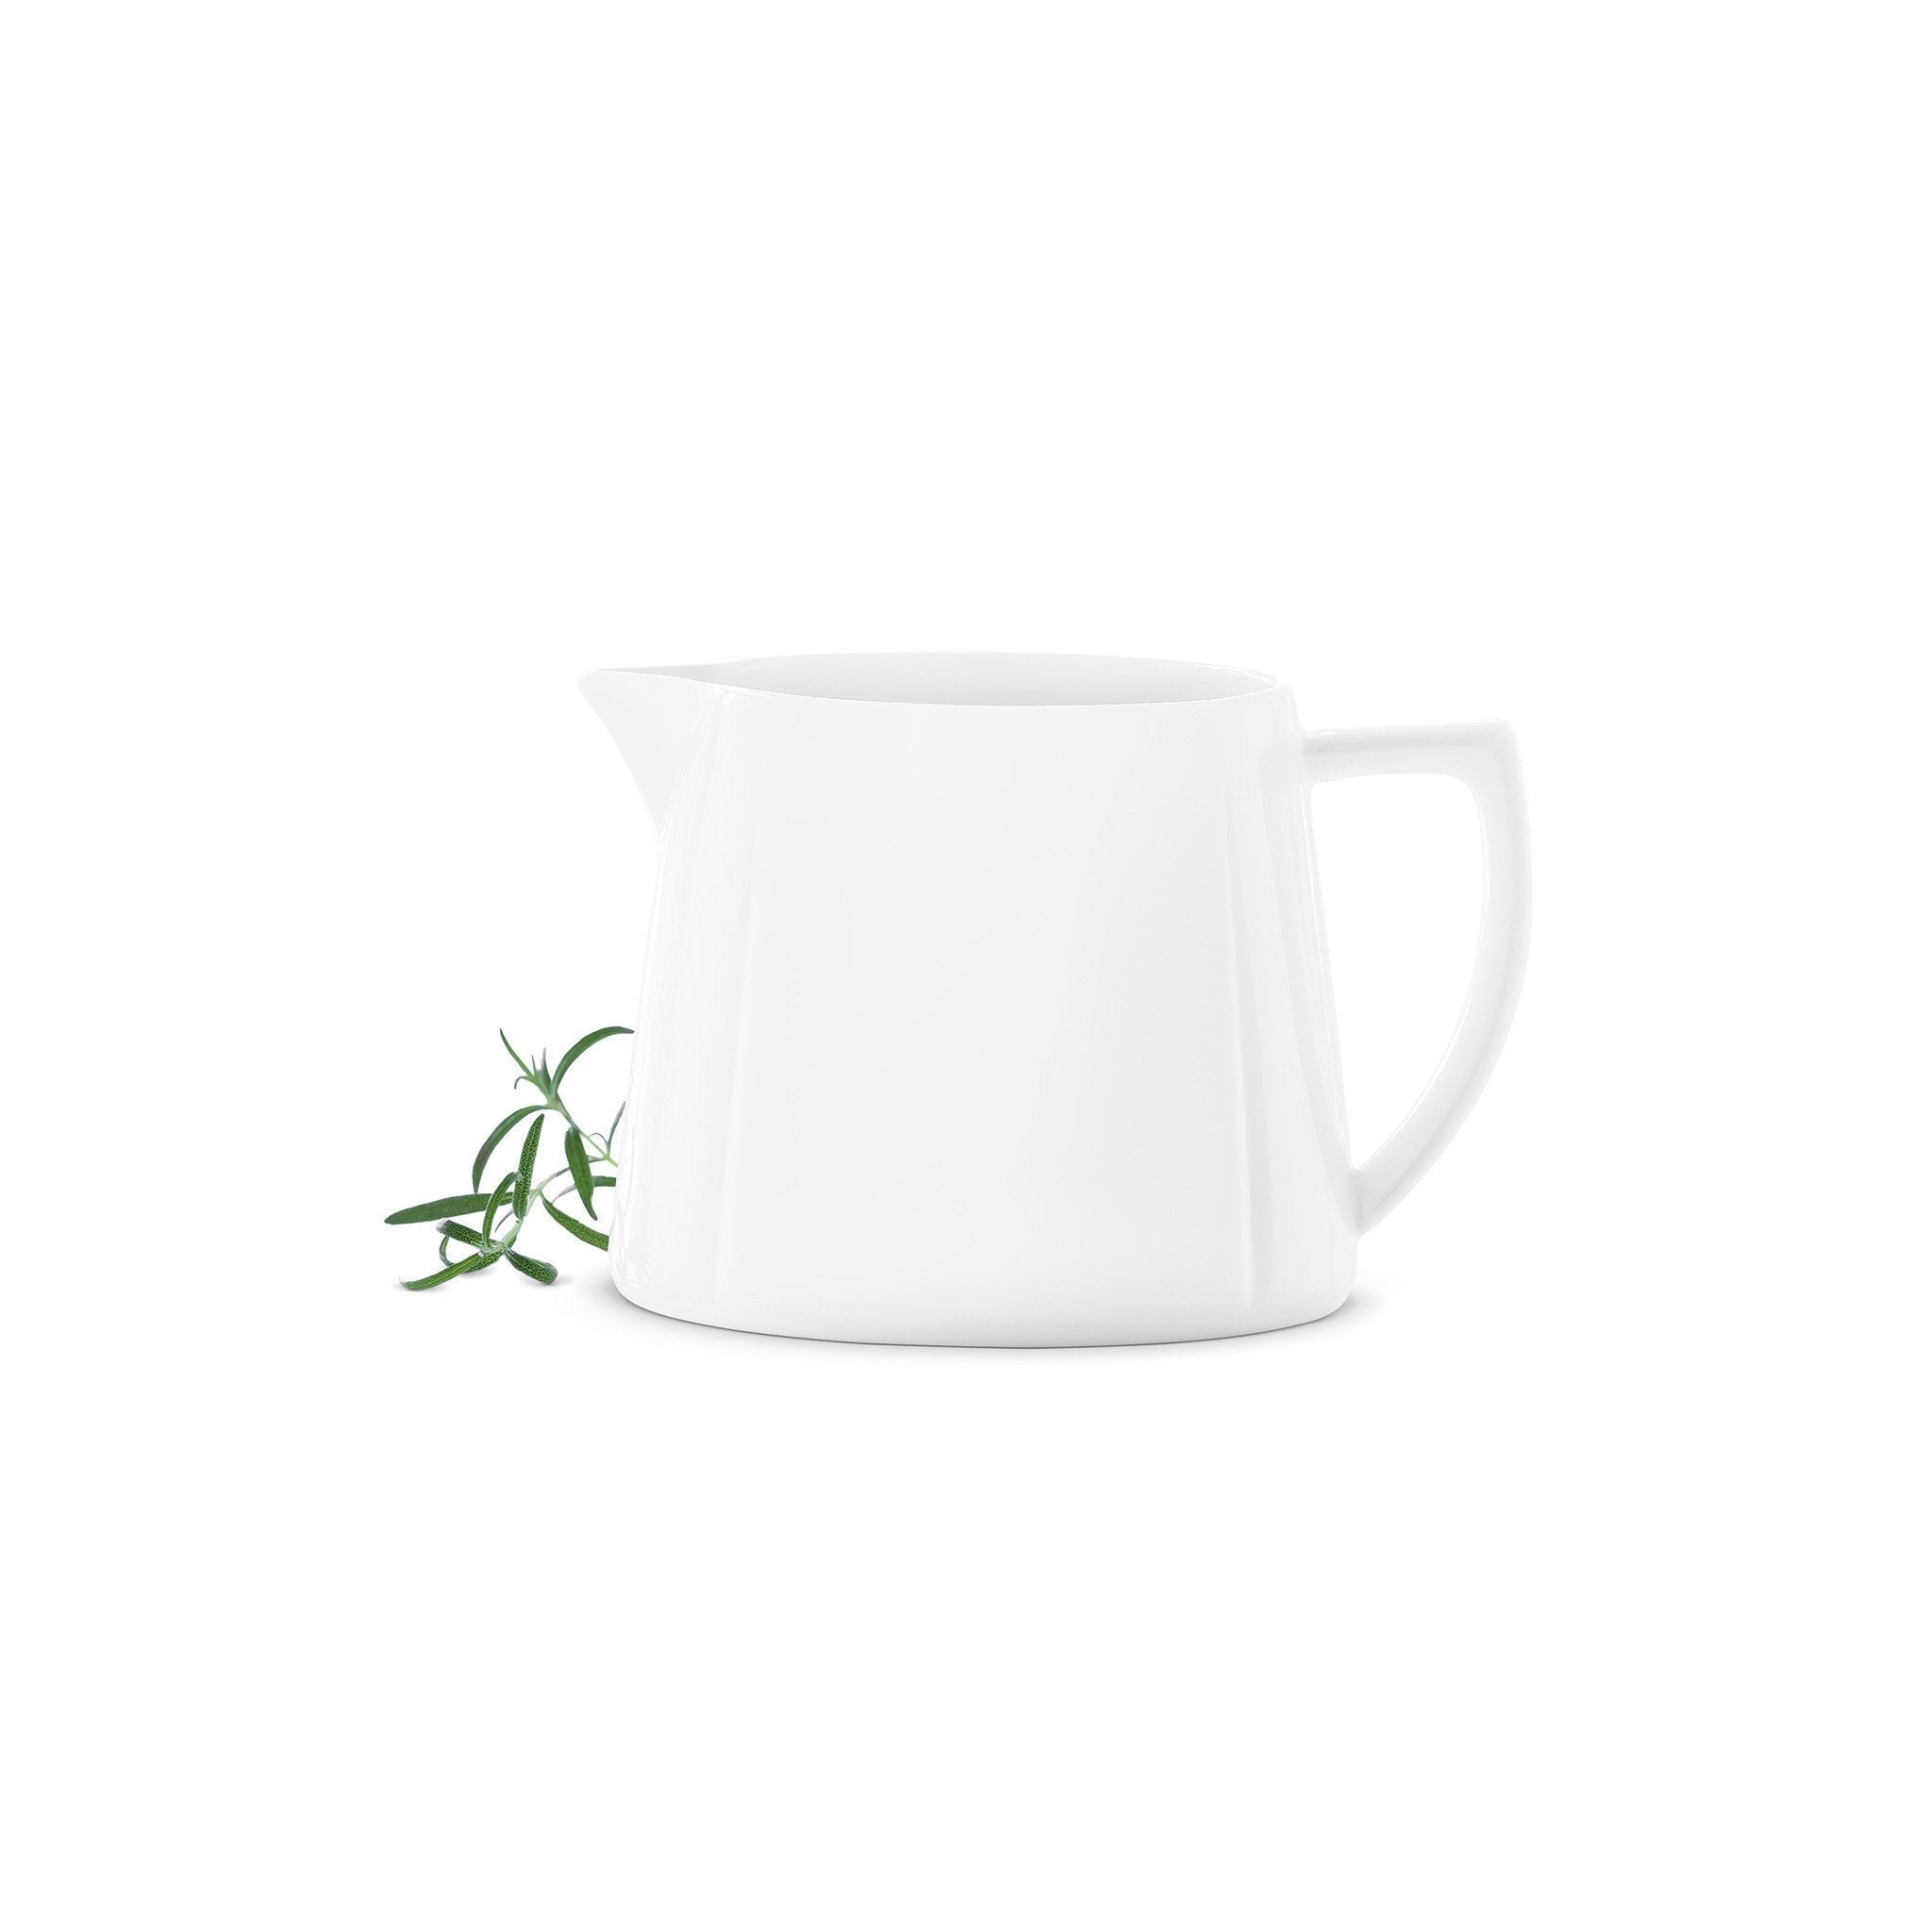 Grand Cru Sauce Boat - white